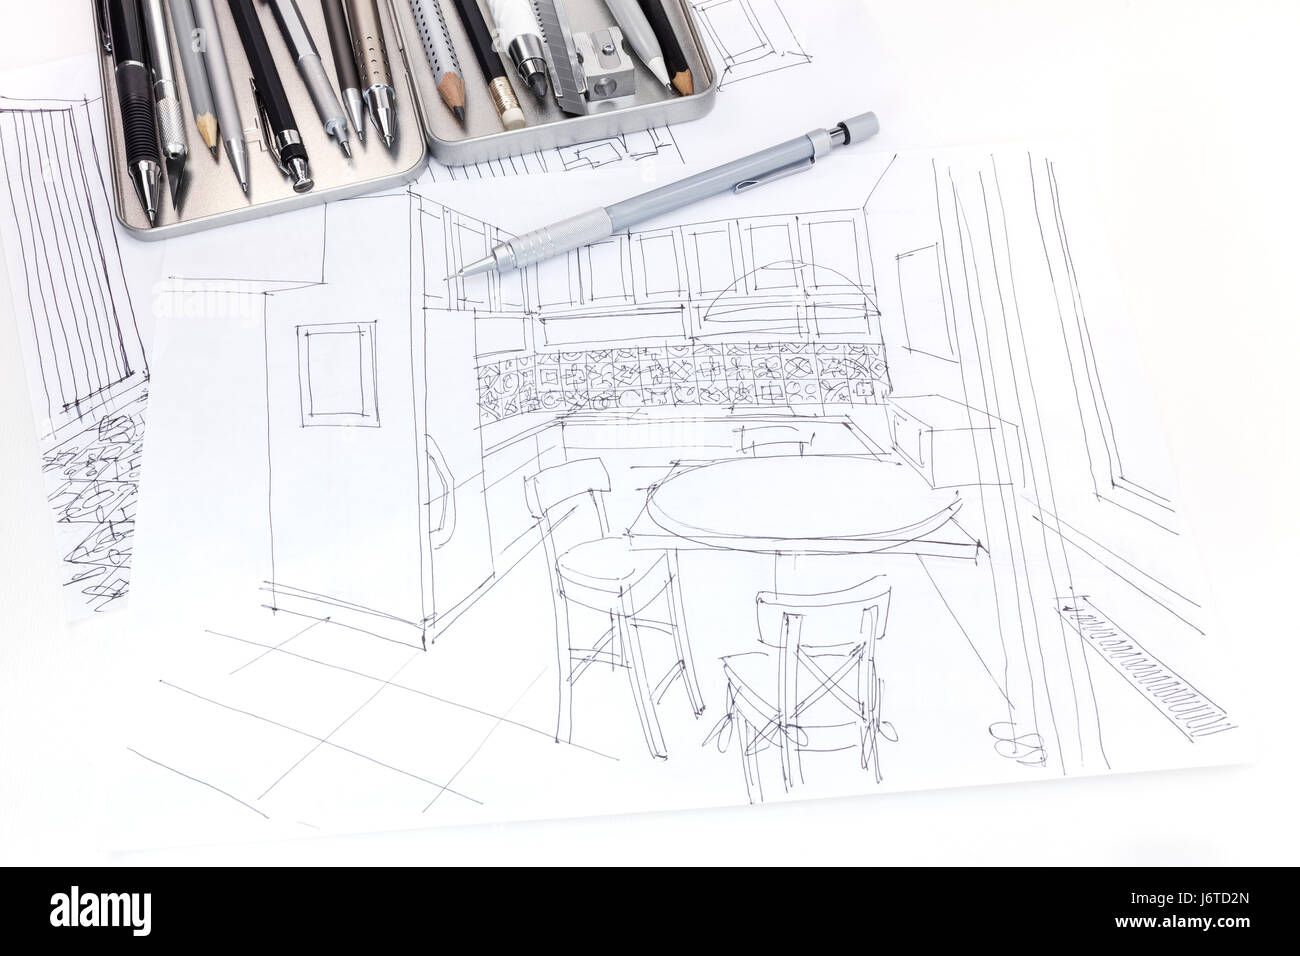 Hand Drawn Sketch Of Kitchen Interior And Furniture Blueprint With